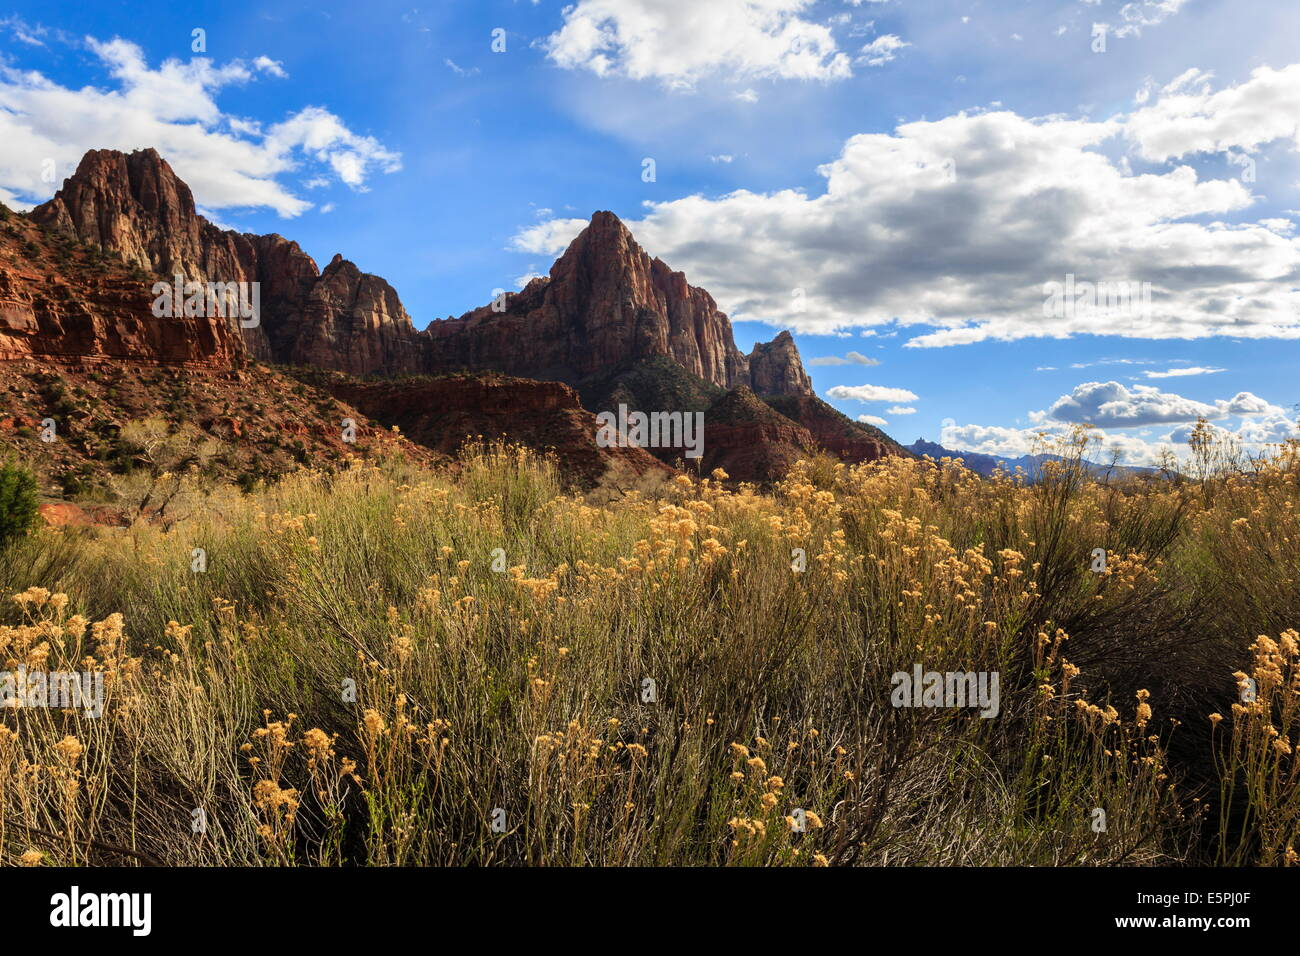 Desert brush and the Watchman in winter, Zion Canyon, Zion National Park, Utah, United States of America, North - Stock Image